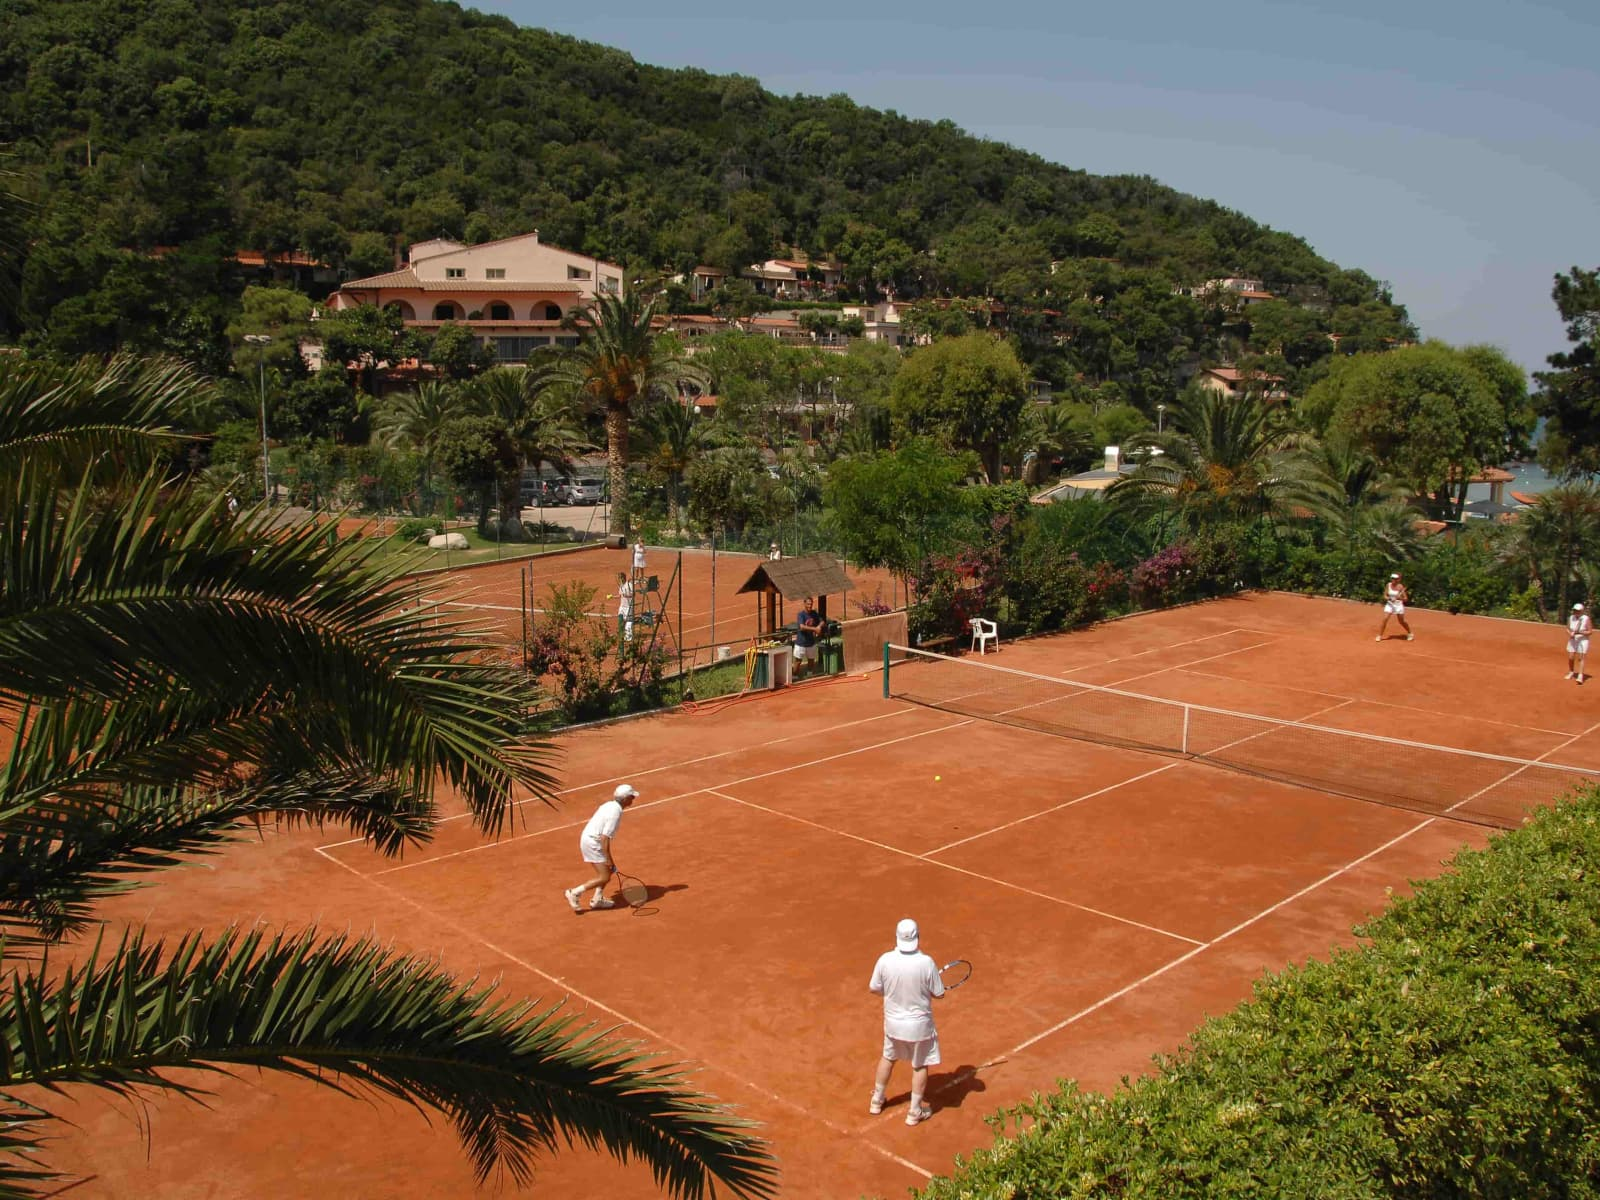 Hotel Hermitage Isola – one of the best tennis resorts for your tennis holidays in Portoferraio, Italy